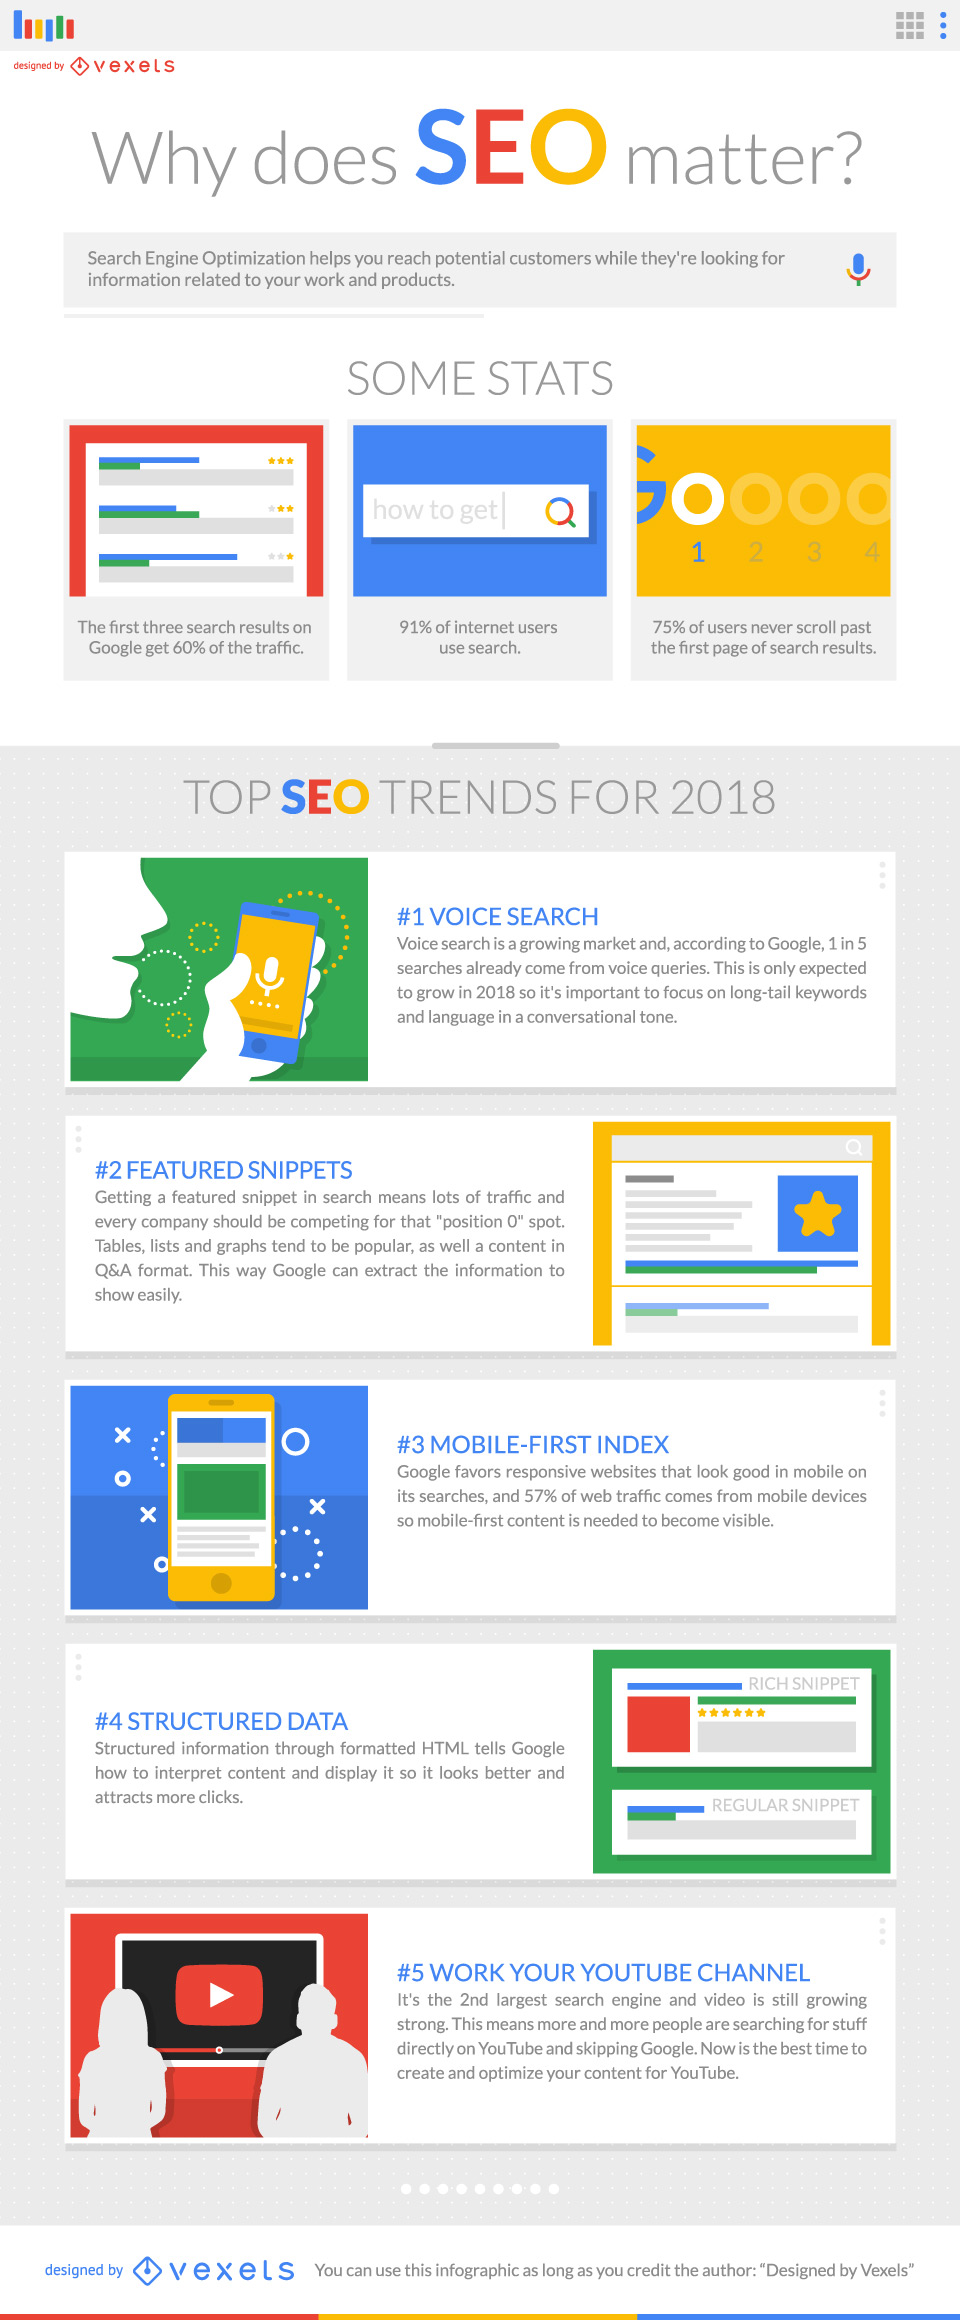 Top SEO Trends for 2018 Infographic